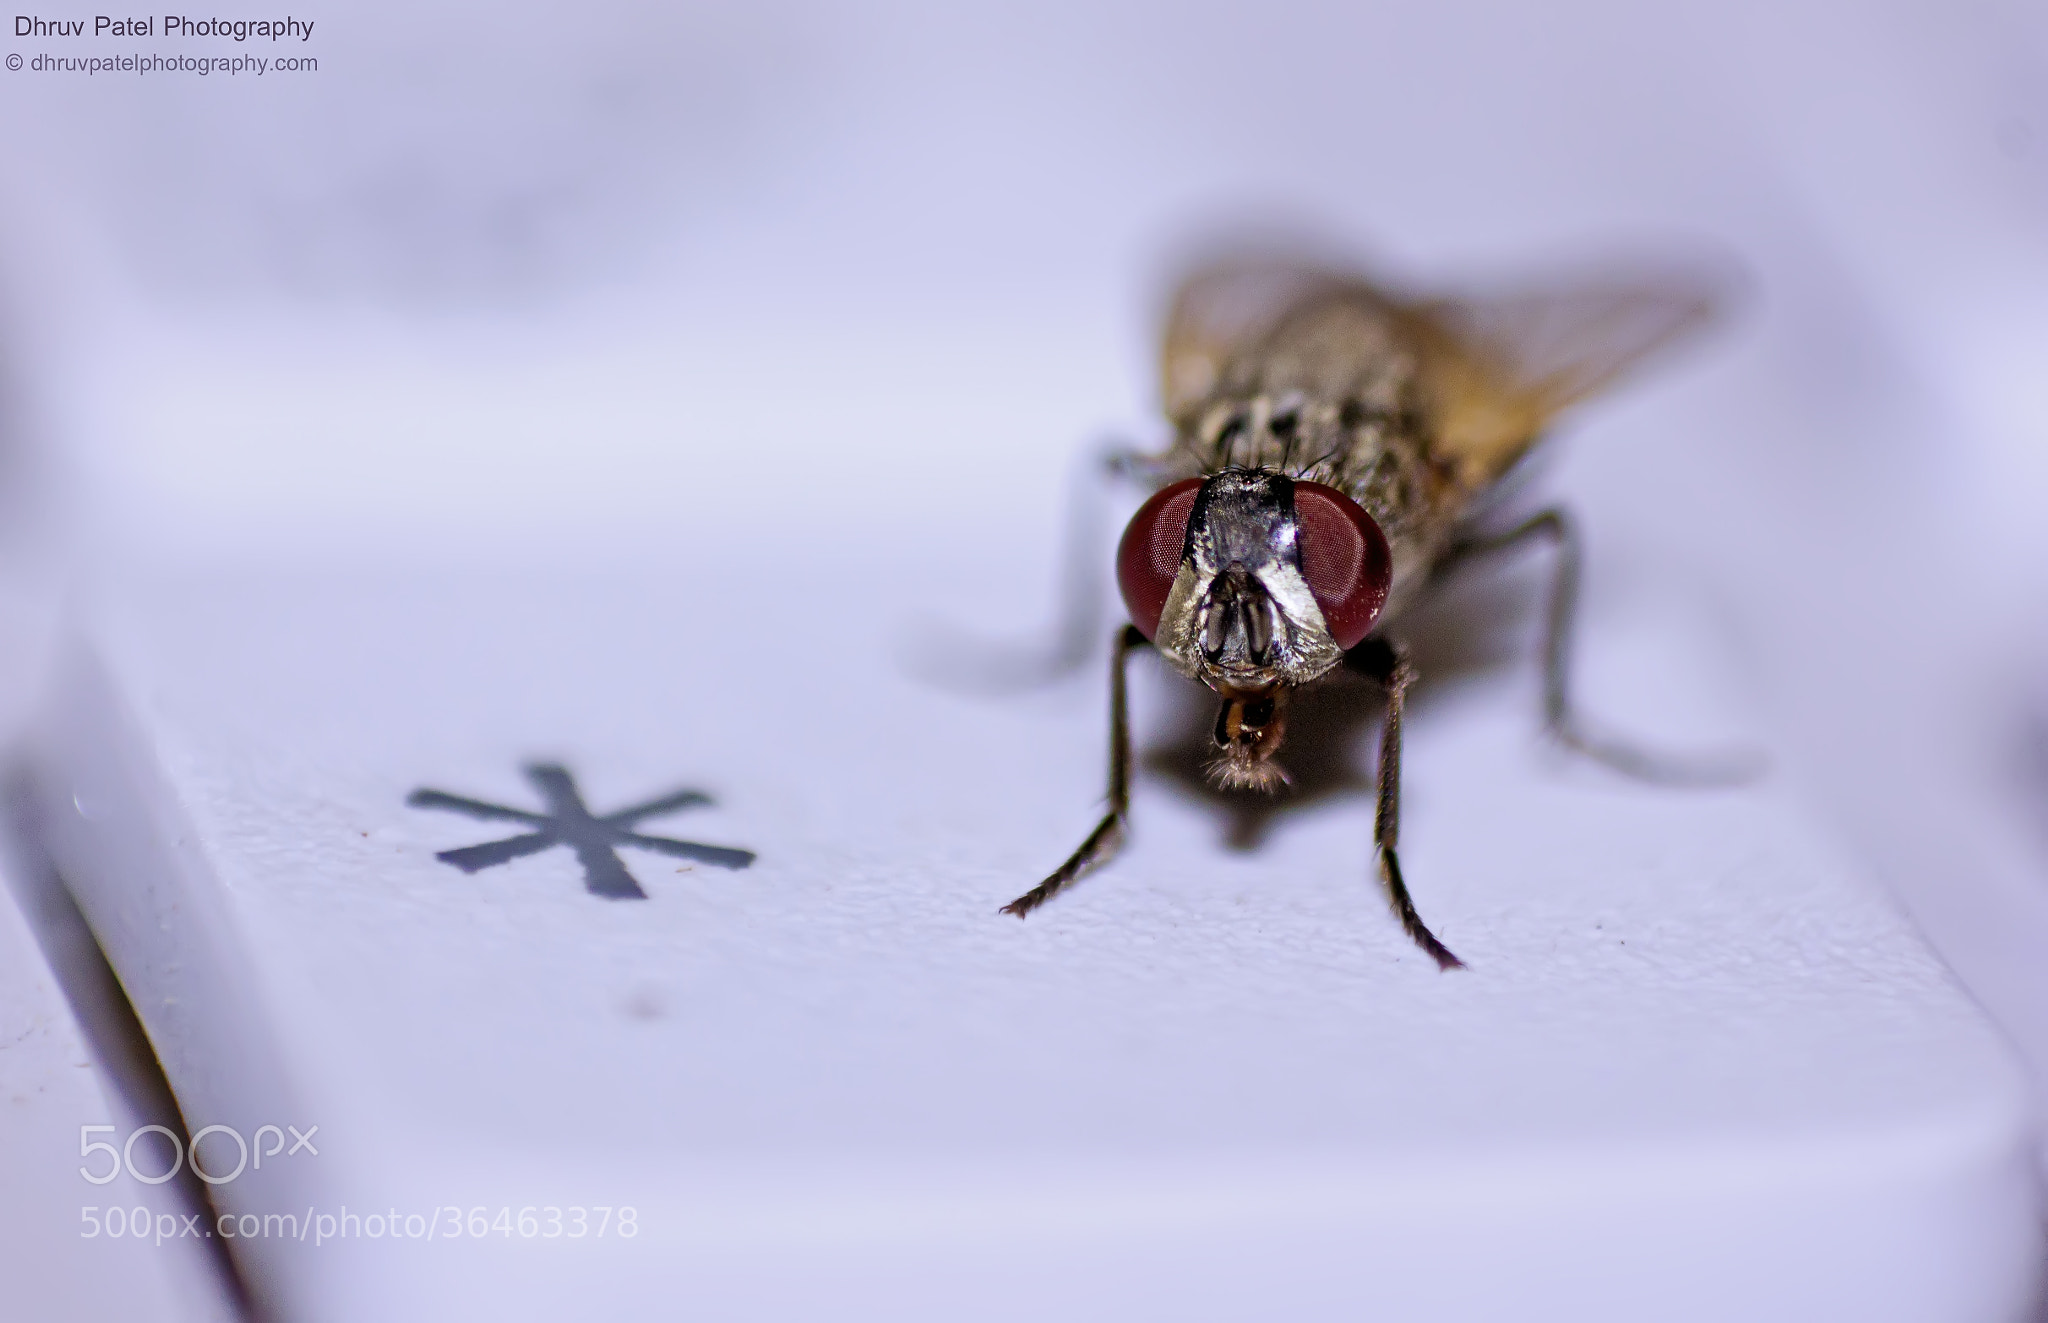 Photograph Dirty Fly by Dhruv Patel on 500px